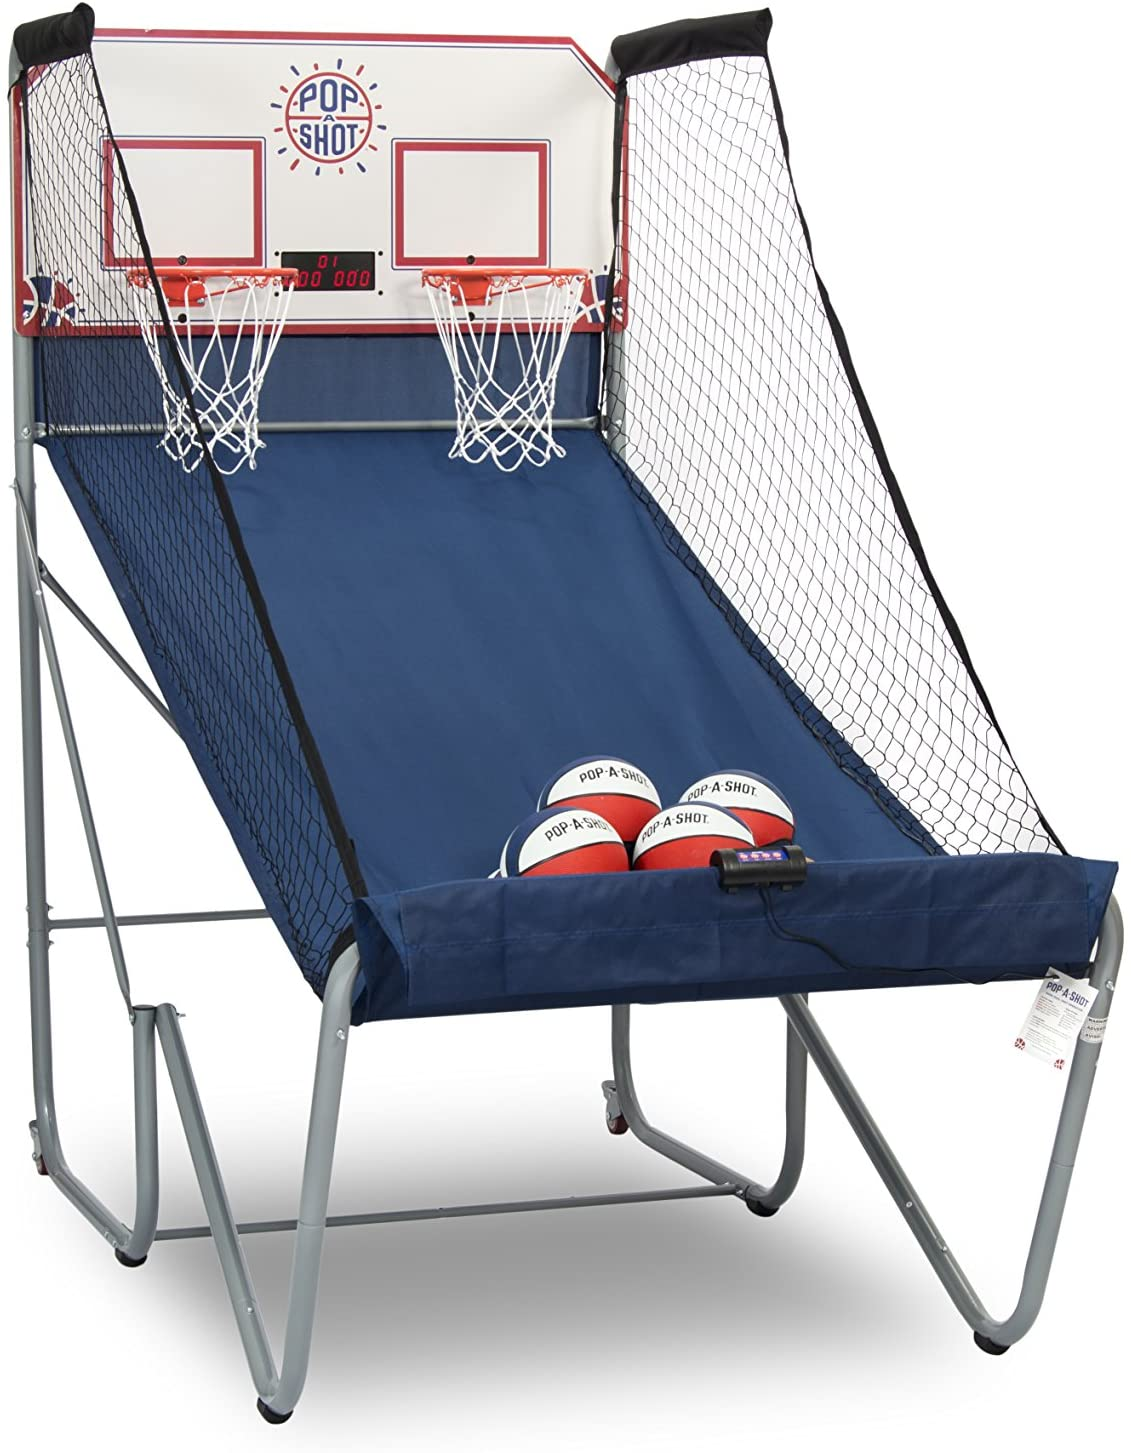 Pop-A-Shot Official Home Dual Shot Basketball Arcade Game - 16 Different Games - 6 Audio Options - Near 100% Scoring Accuracy - Multiple Height Settings - Large LED Scoreboard